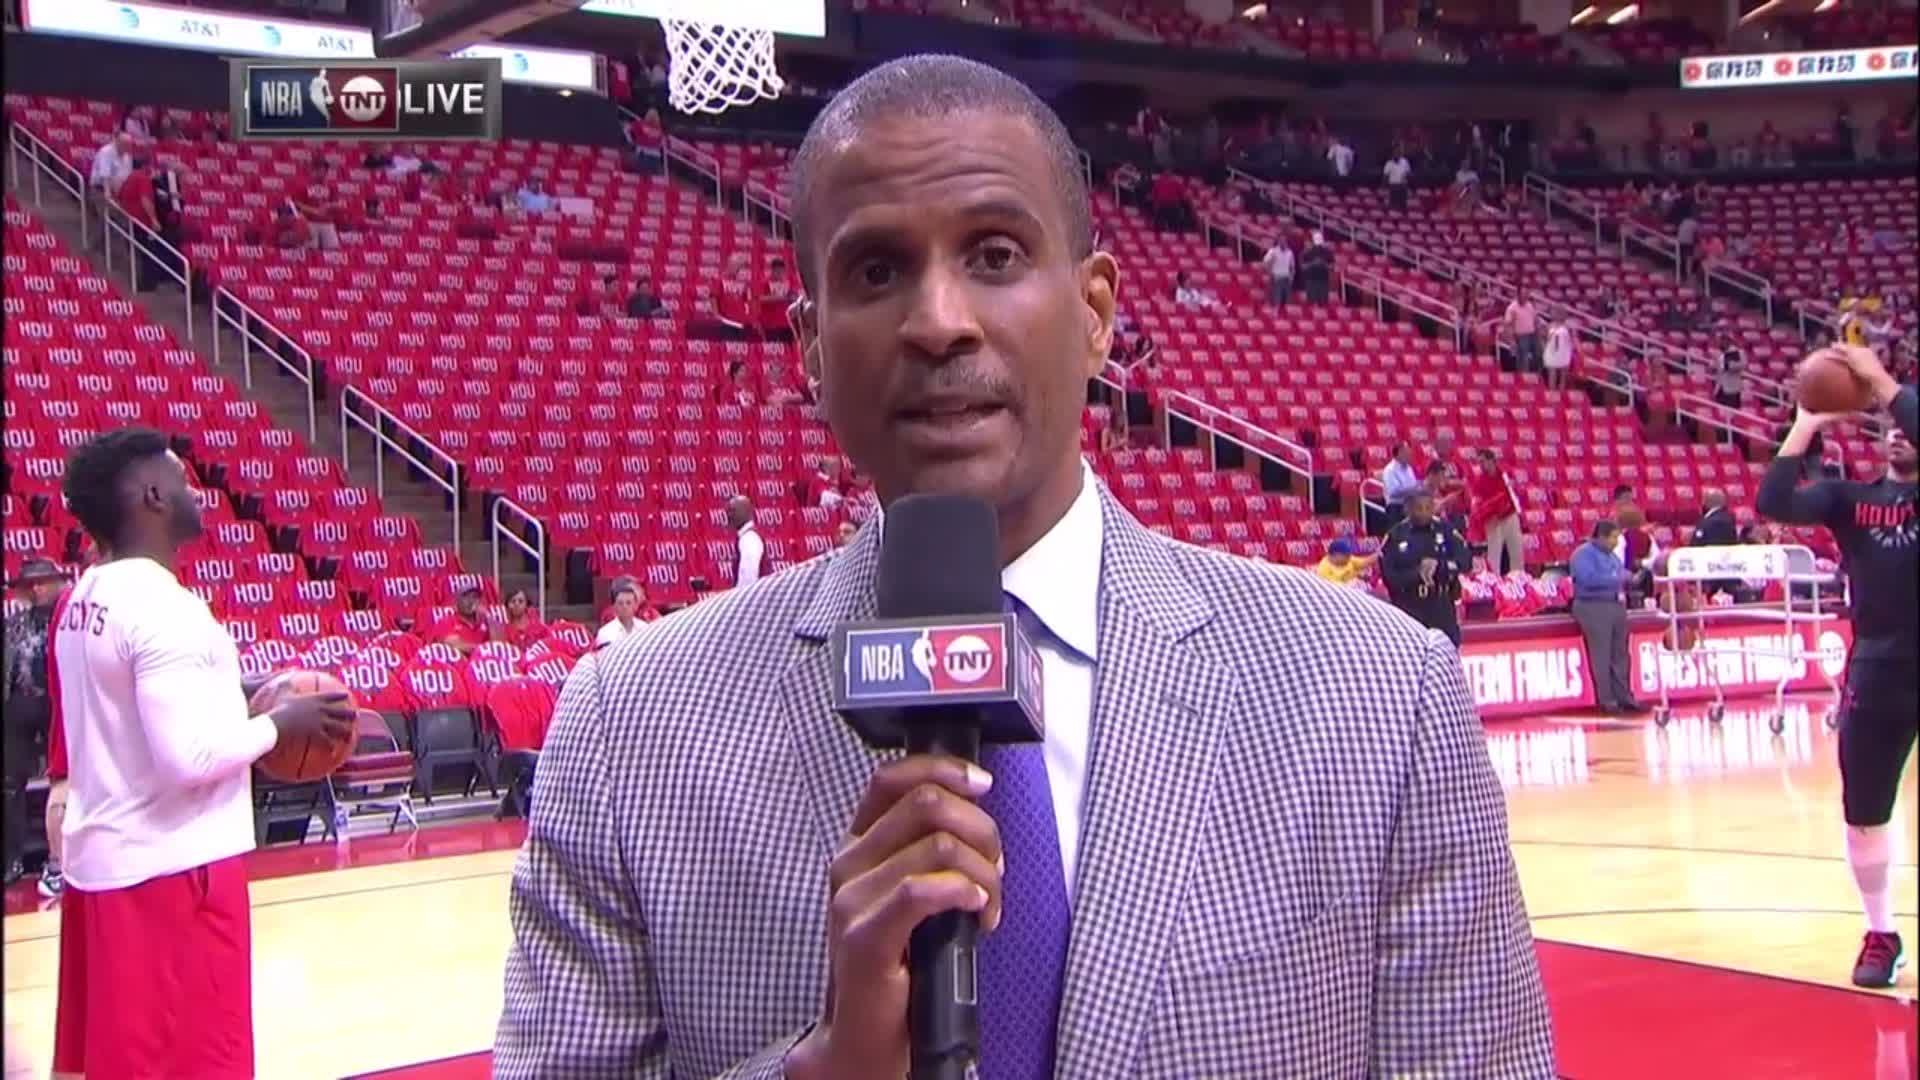 'It's time to play.'  @daldridgetnt gets you set for Game 1 with a sideline update! https://t.co/ipF8wGEgGA